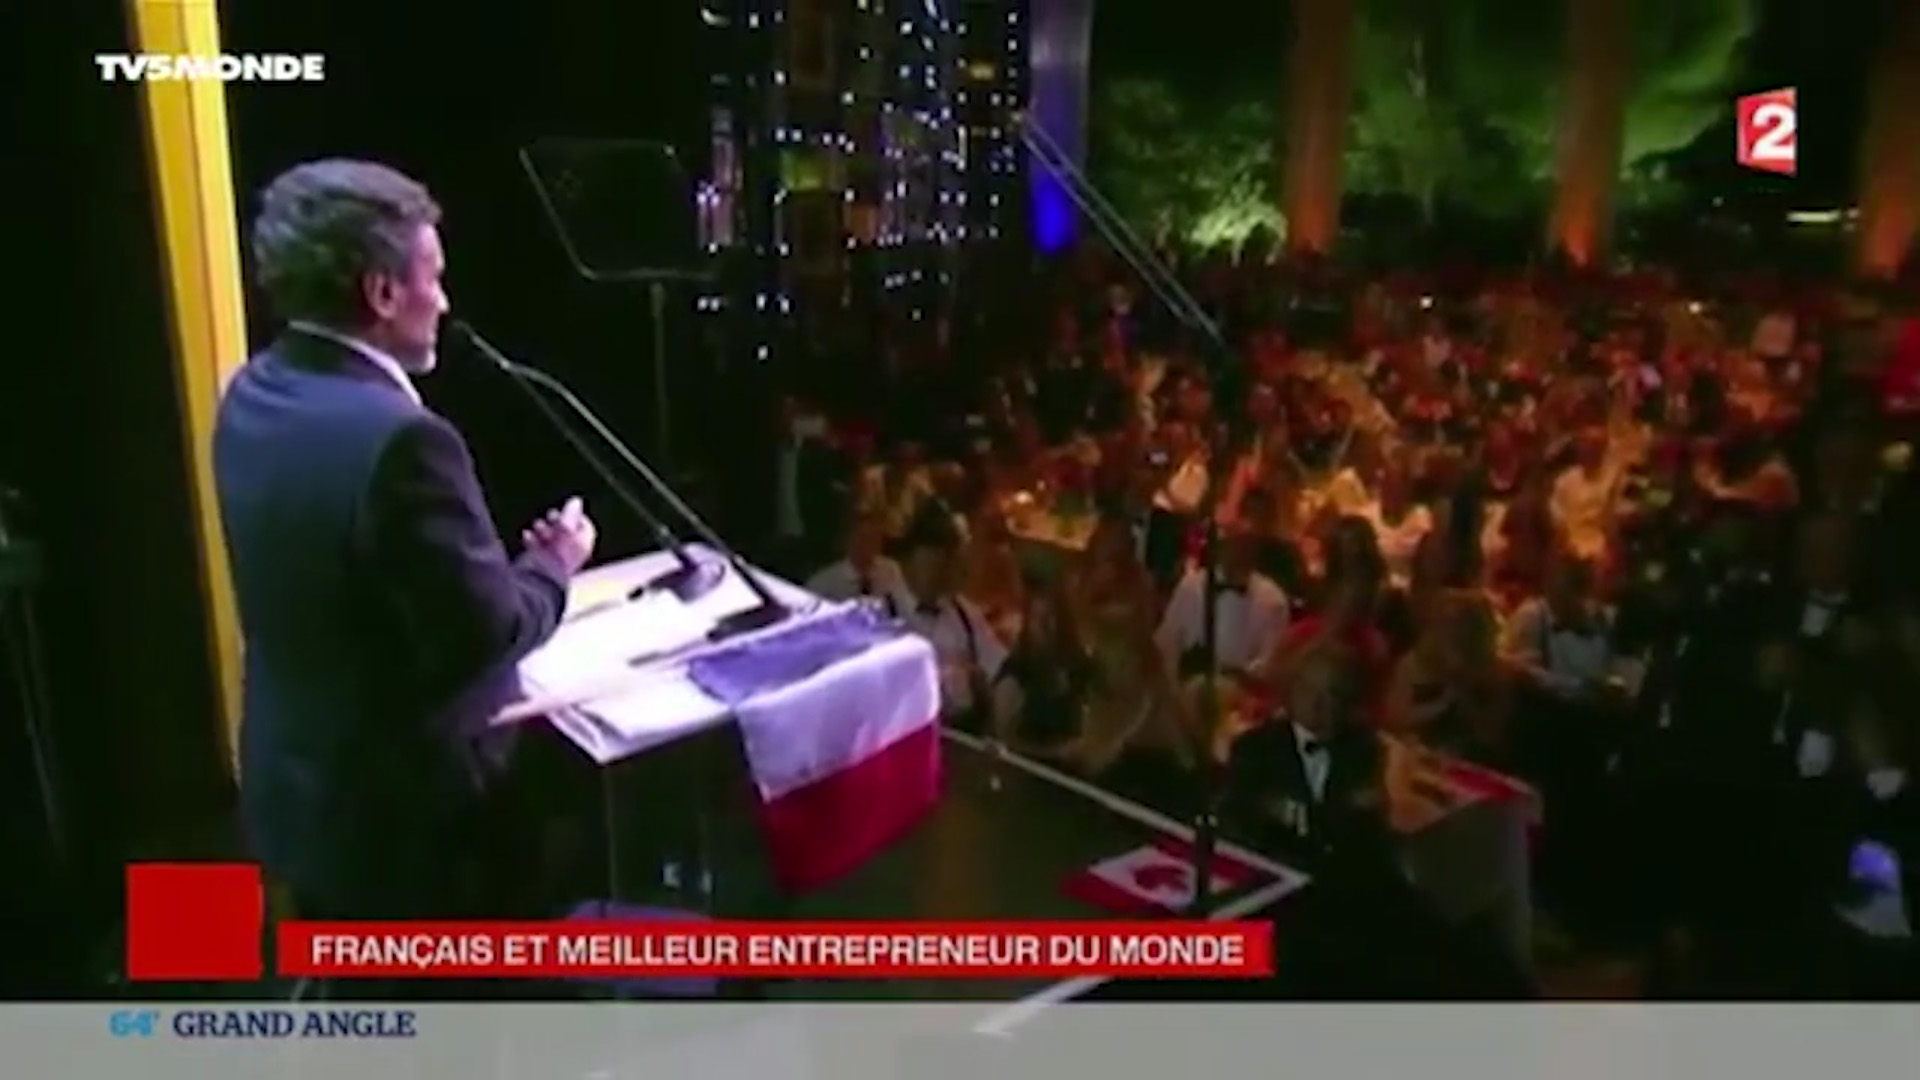 Grand Angle - TV5 Monde - 2015 - M.Altrad, World Entrepreneur of The Year 2015